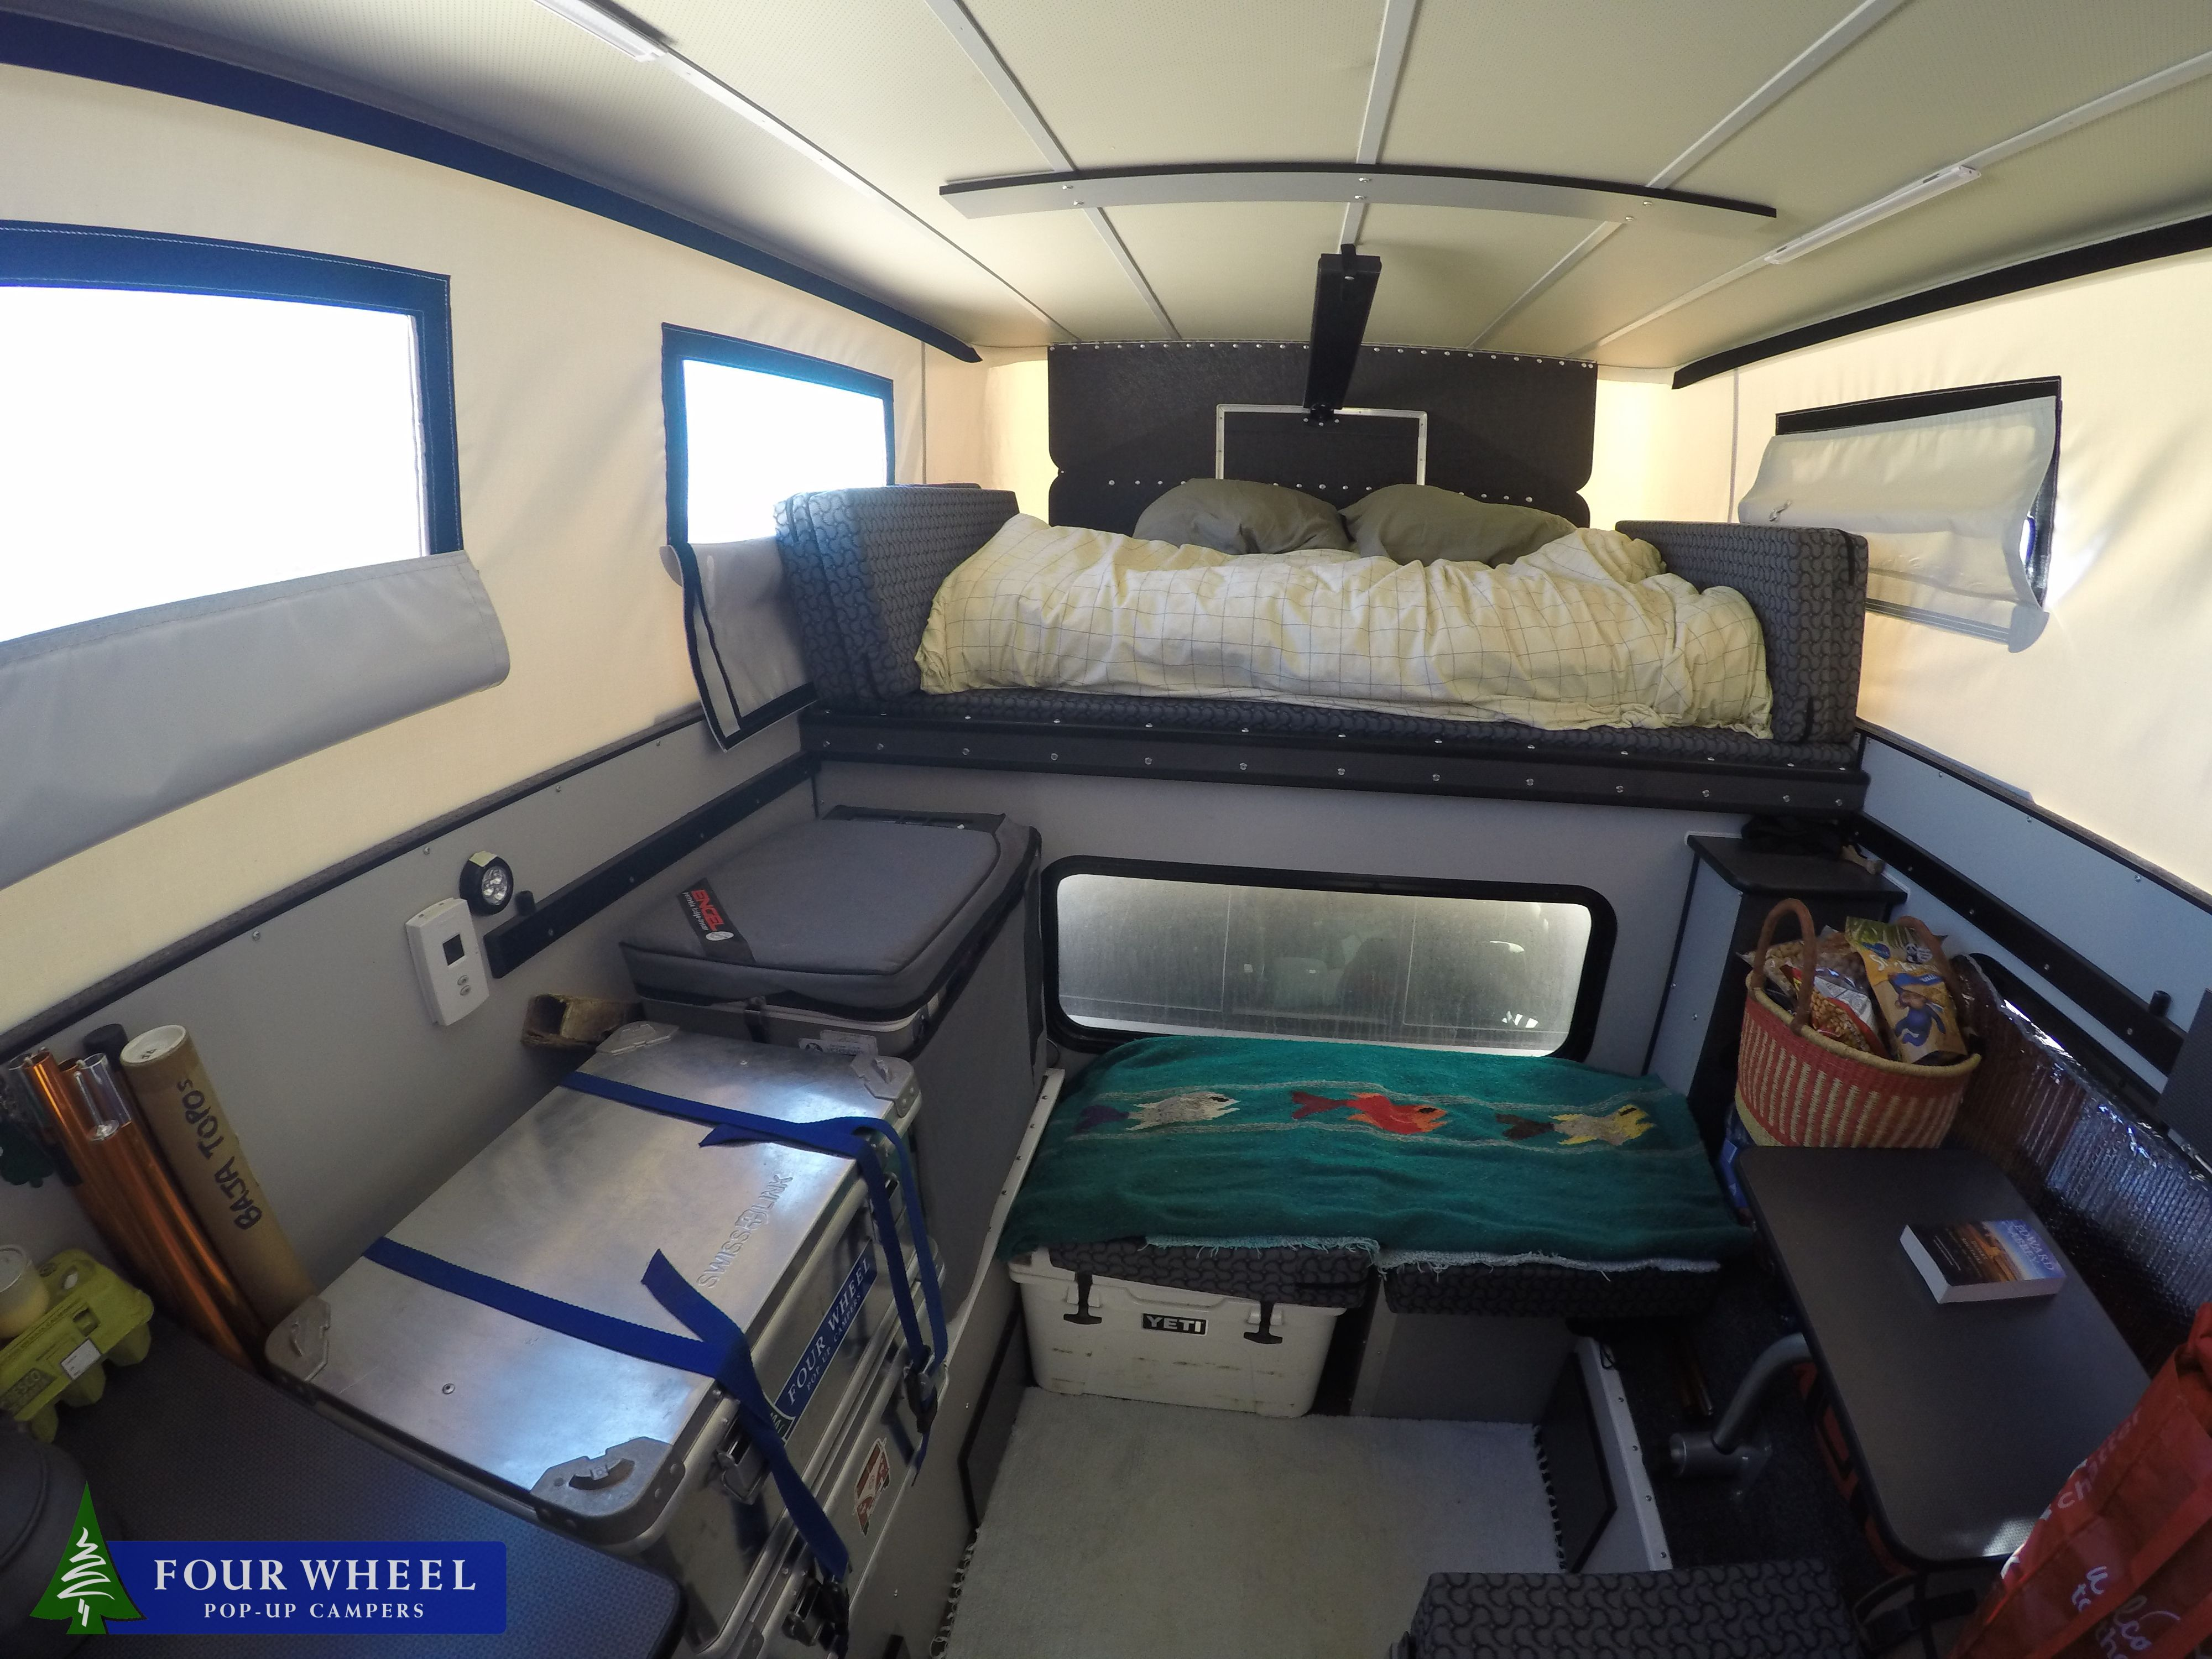 Didnt Know It Can Be So Cozy Inside A Pick Up Truck Camper Overlandcampers Popuptruckcampers Pickuptruck Pop Up Truck Campers Truck Camper Camper Interior